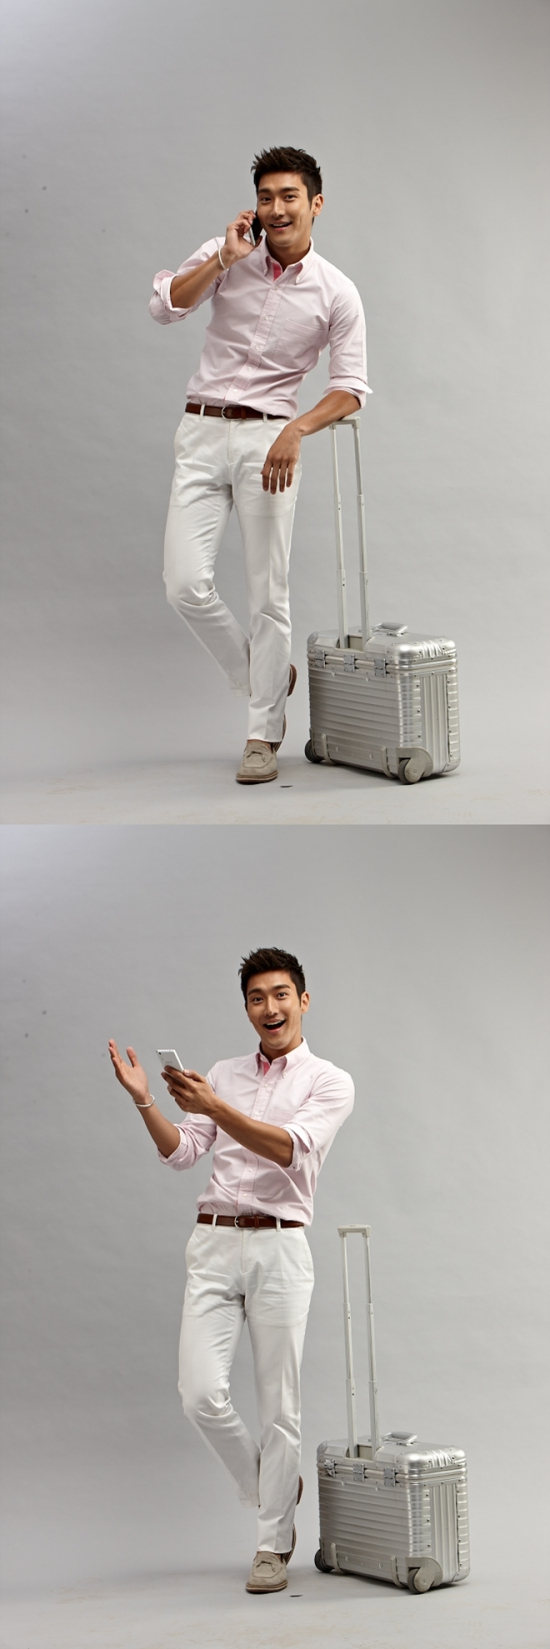 siwon-lte-8